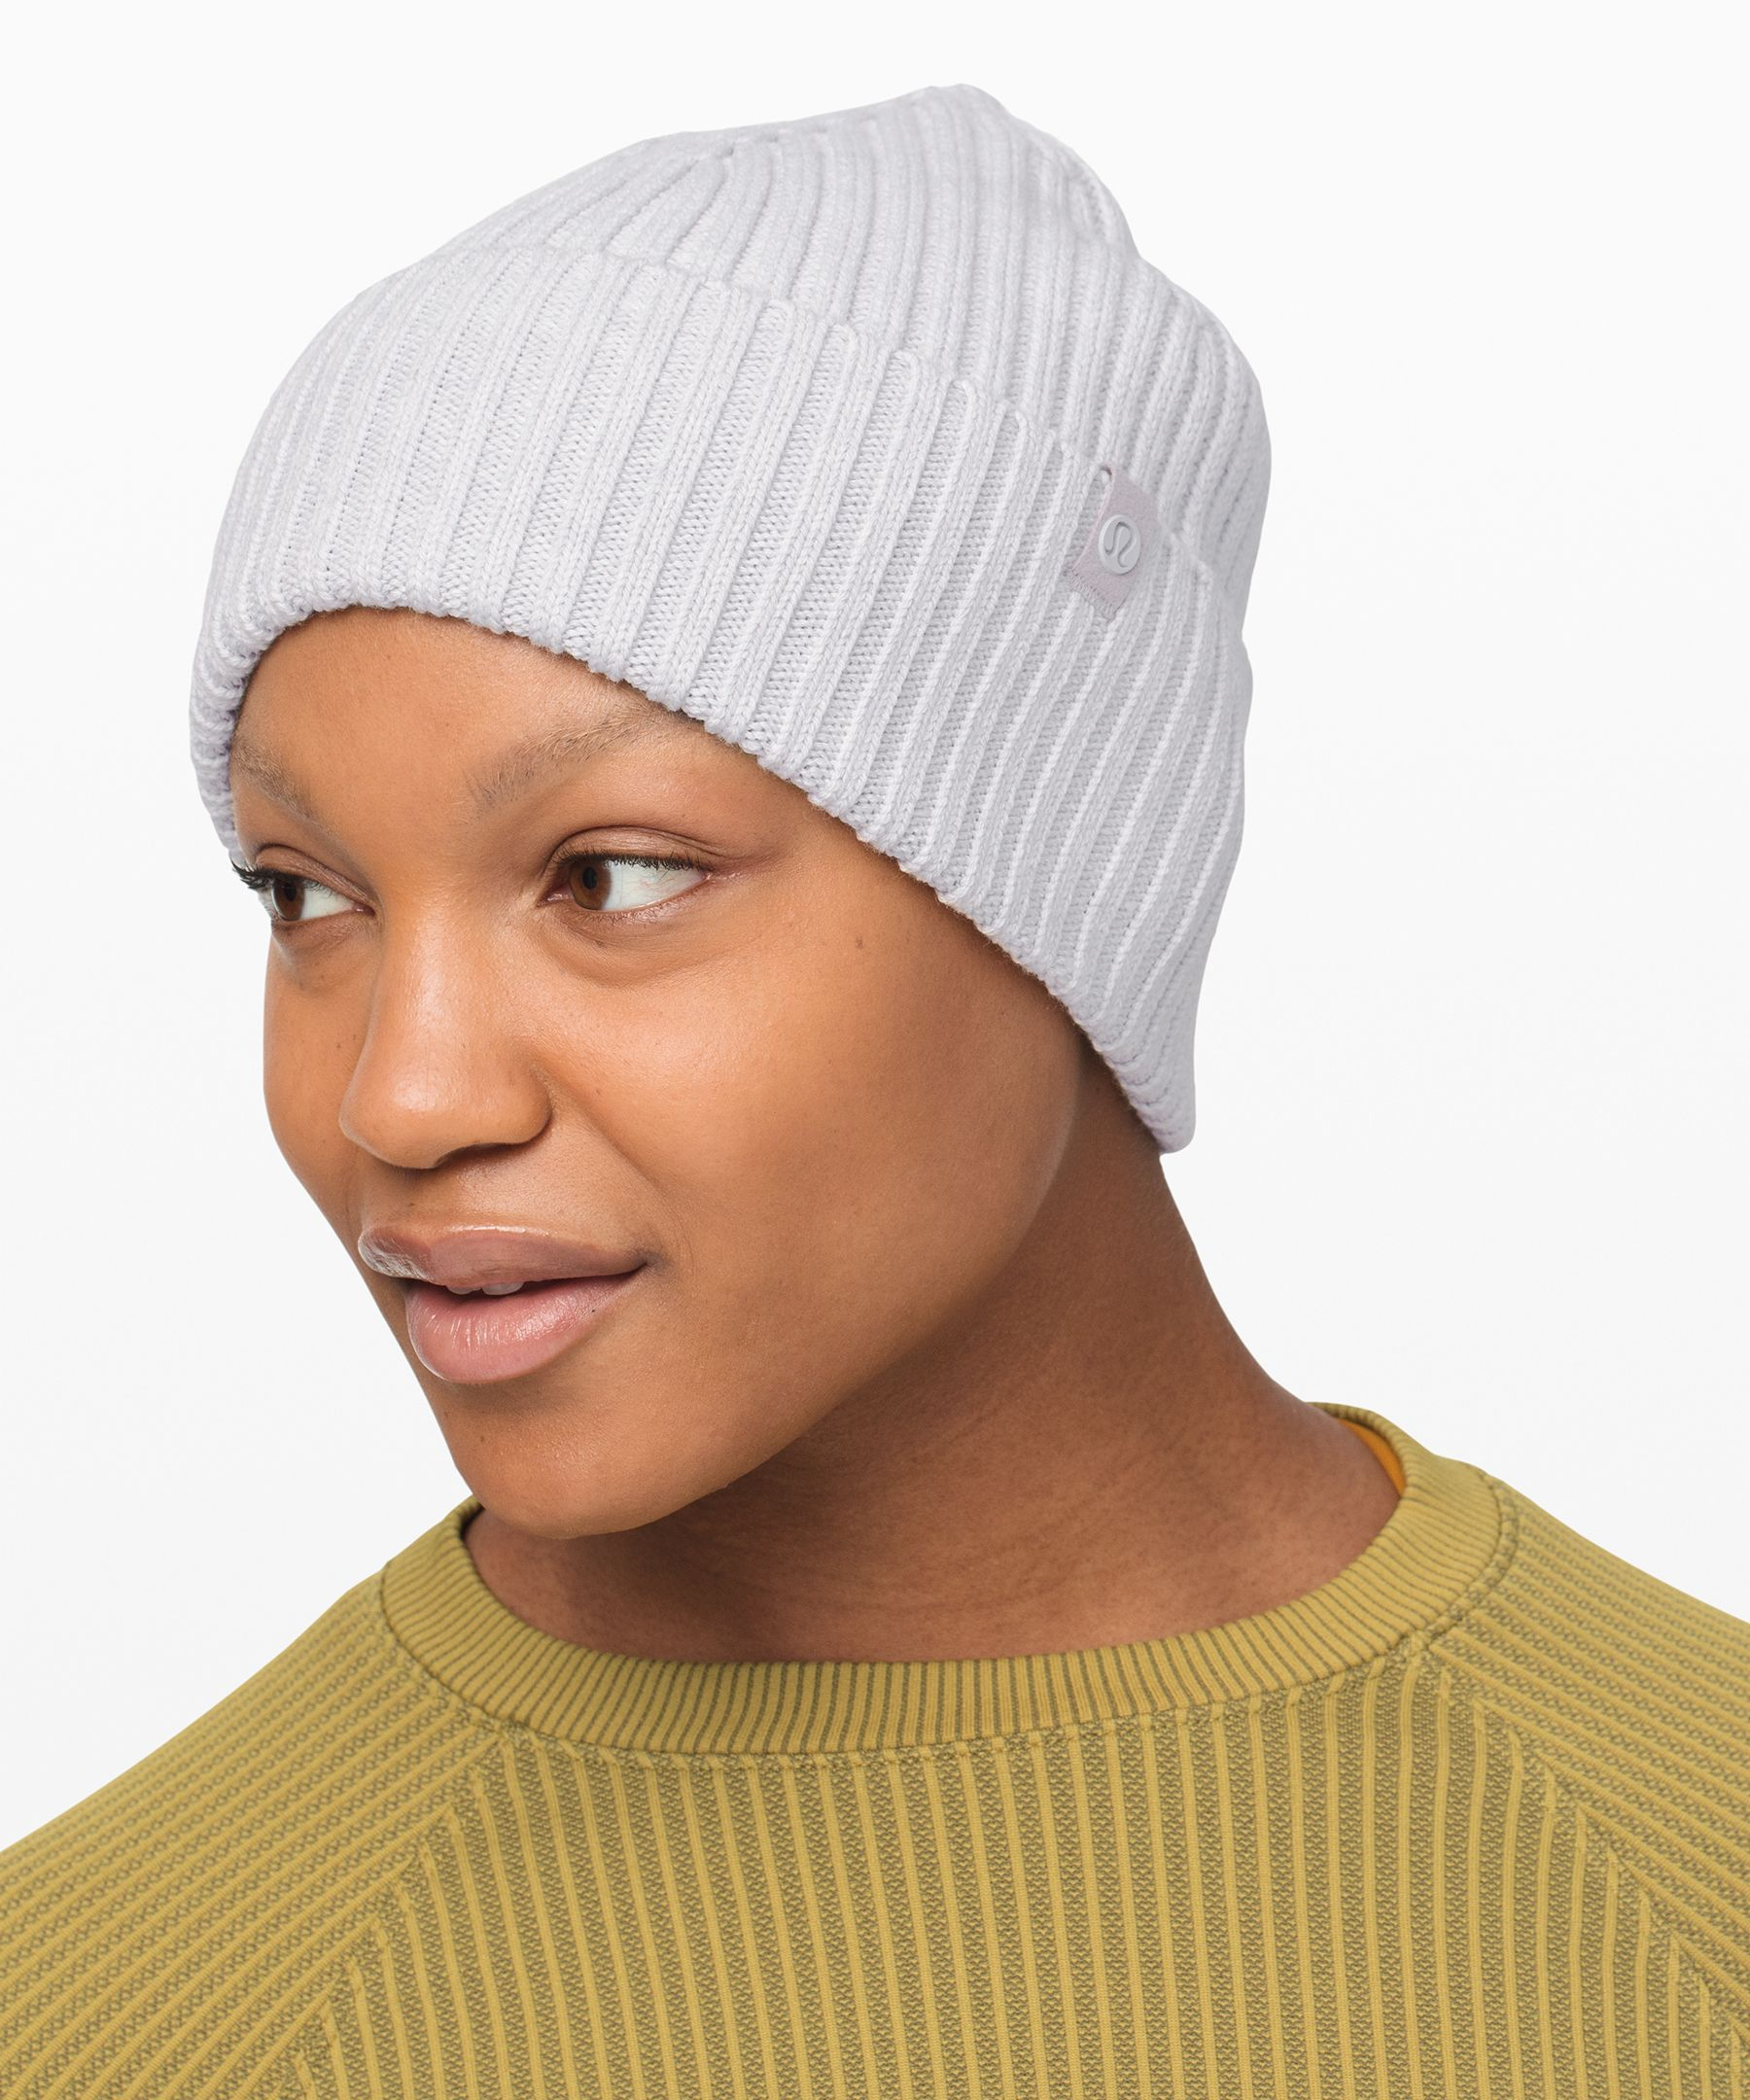 Top off your look with this  beanie that will keep you  feeling warm no matter where  your adventures take you.